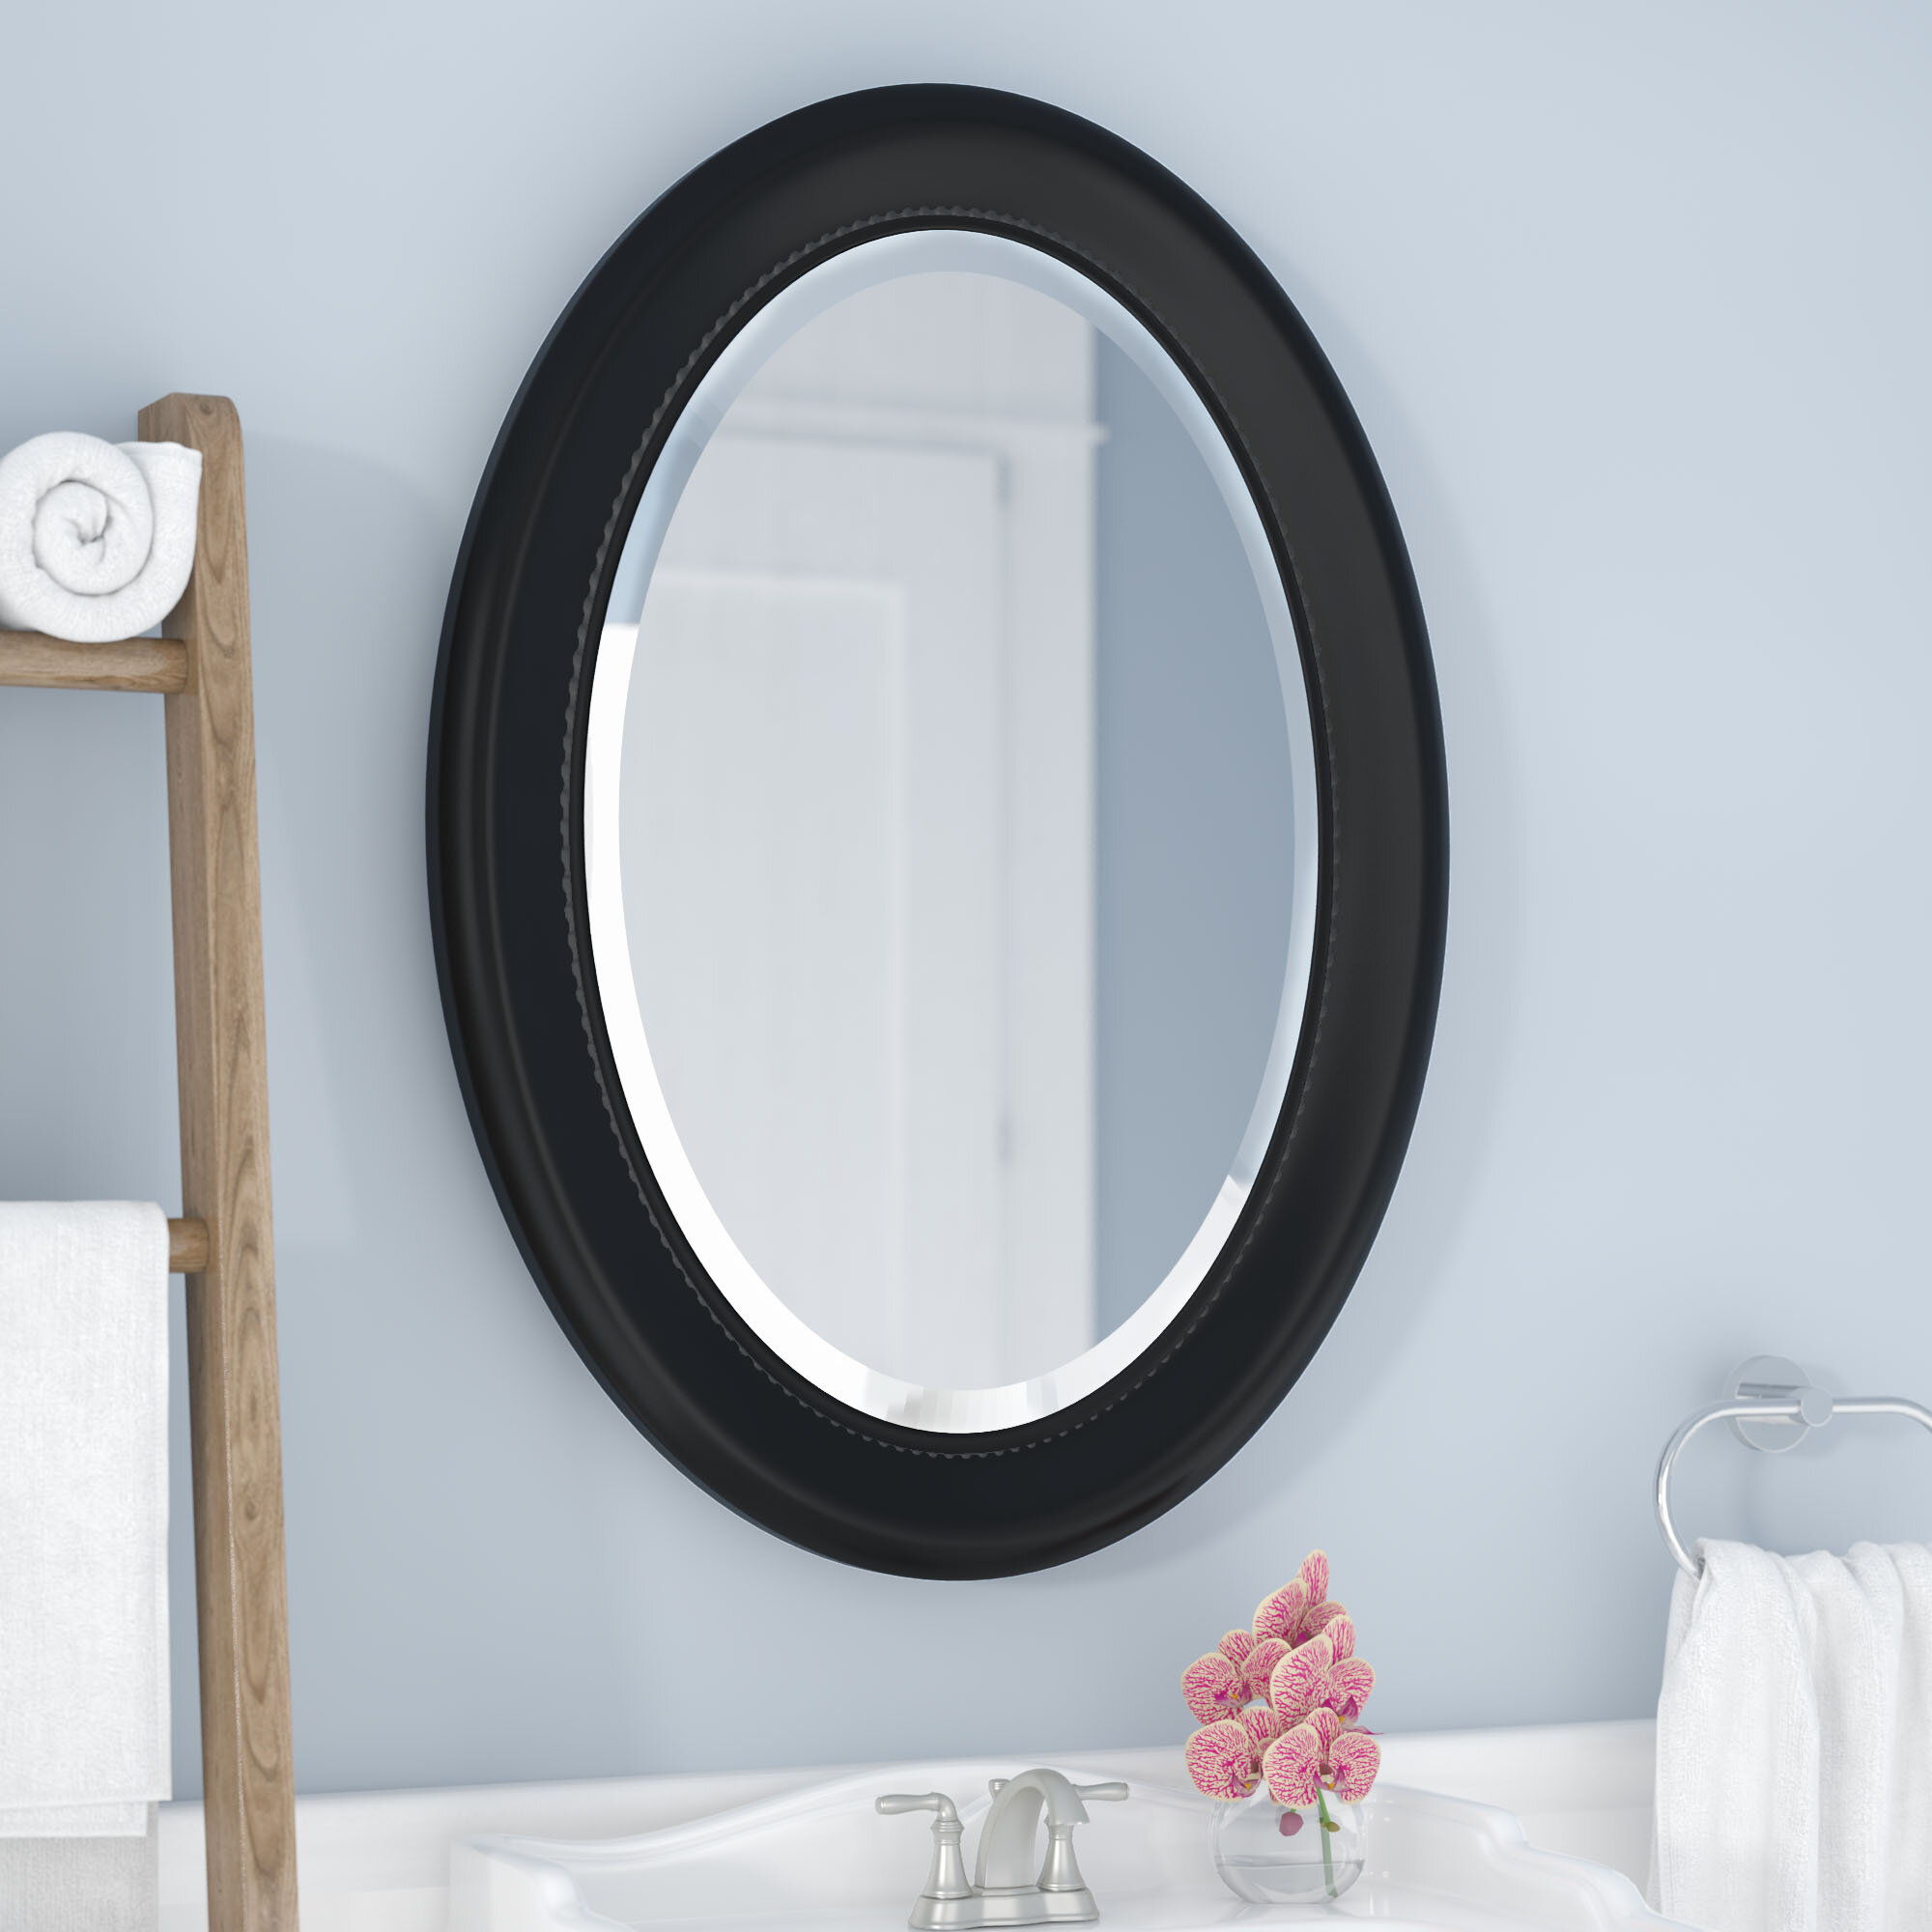 Beachcrest Home Elenor Oval Wall Mounted Accent Mirror Reviews Wayfair Ca